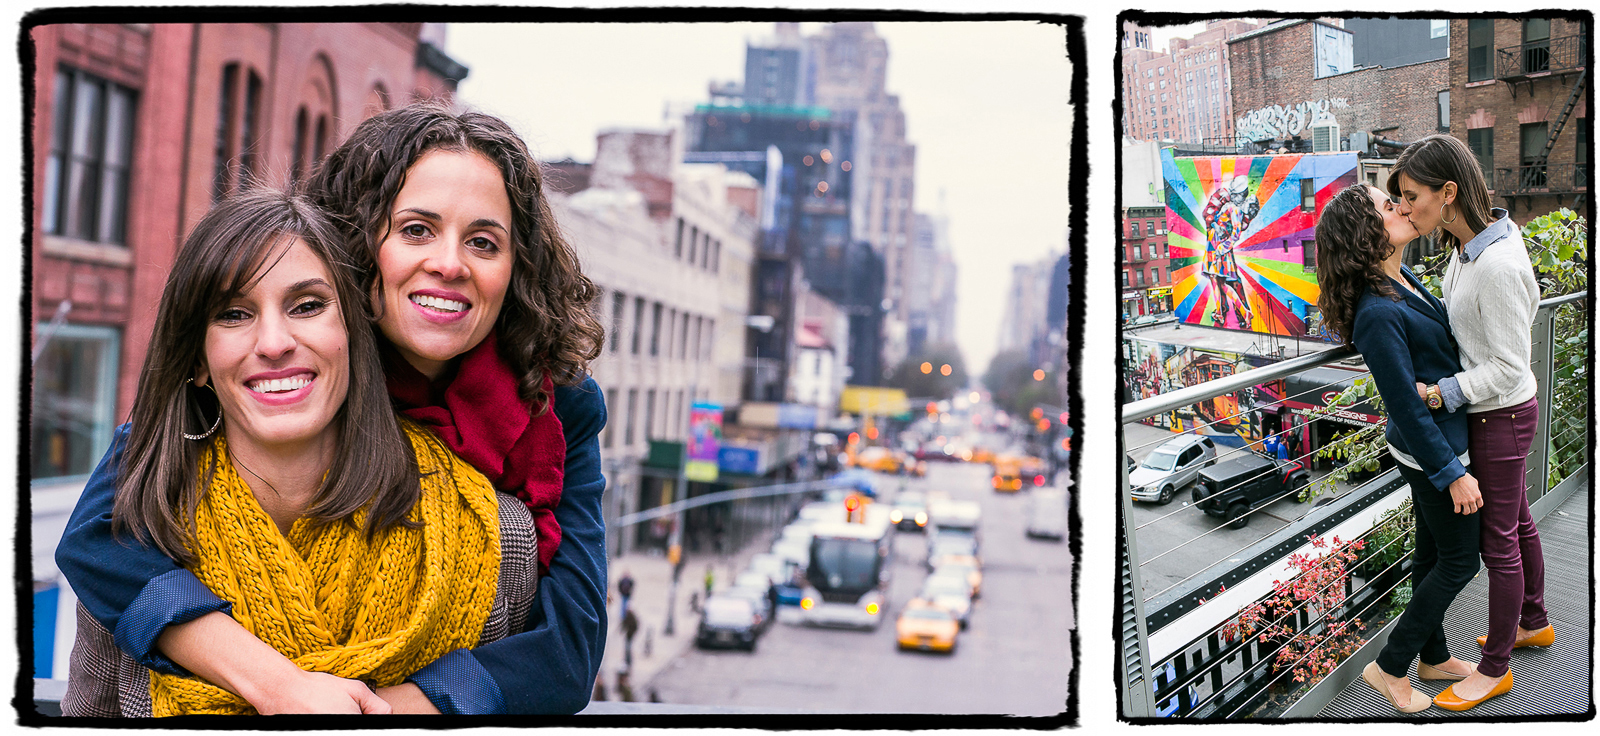 Engagement Portrait: Lara & Nicole enjoyed a crisp fall walk on the High Line.